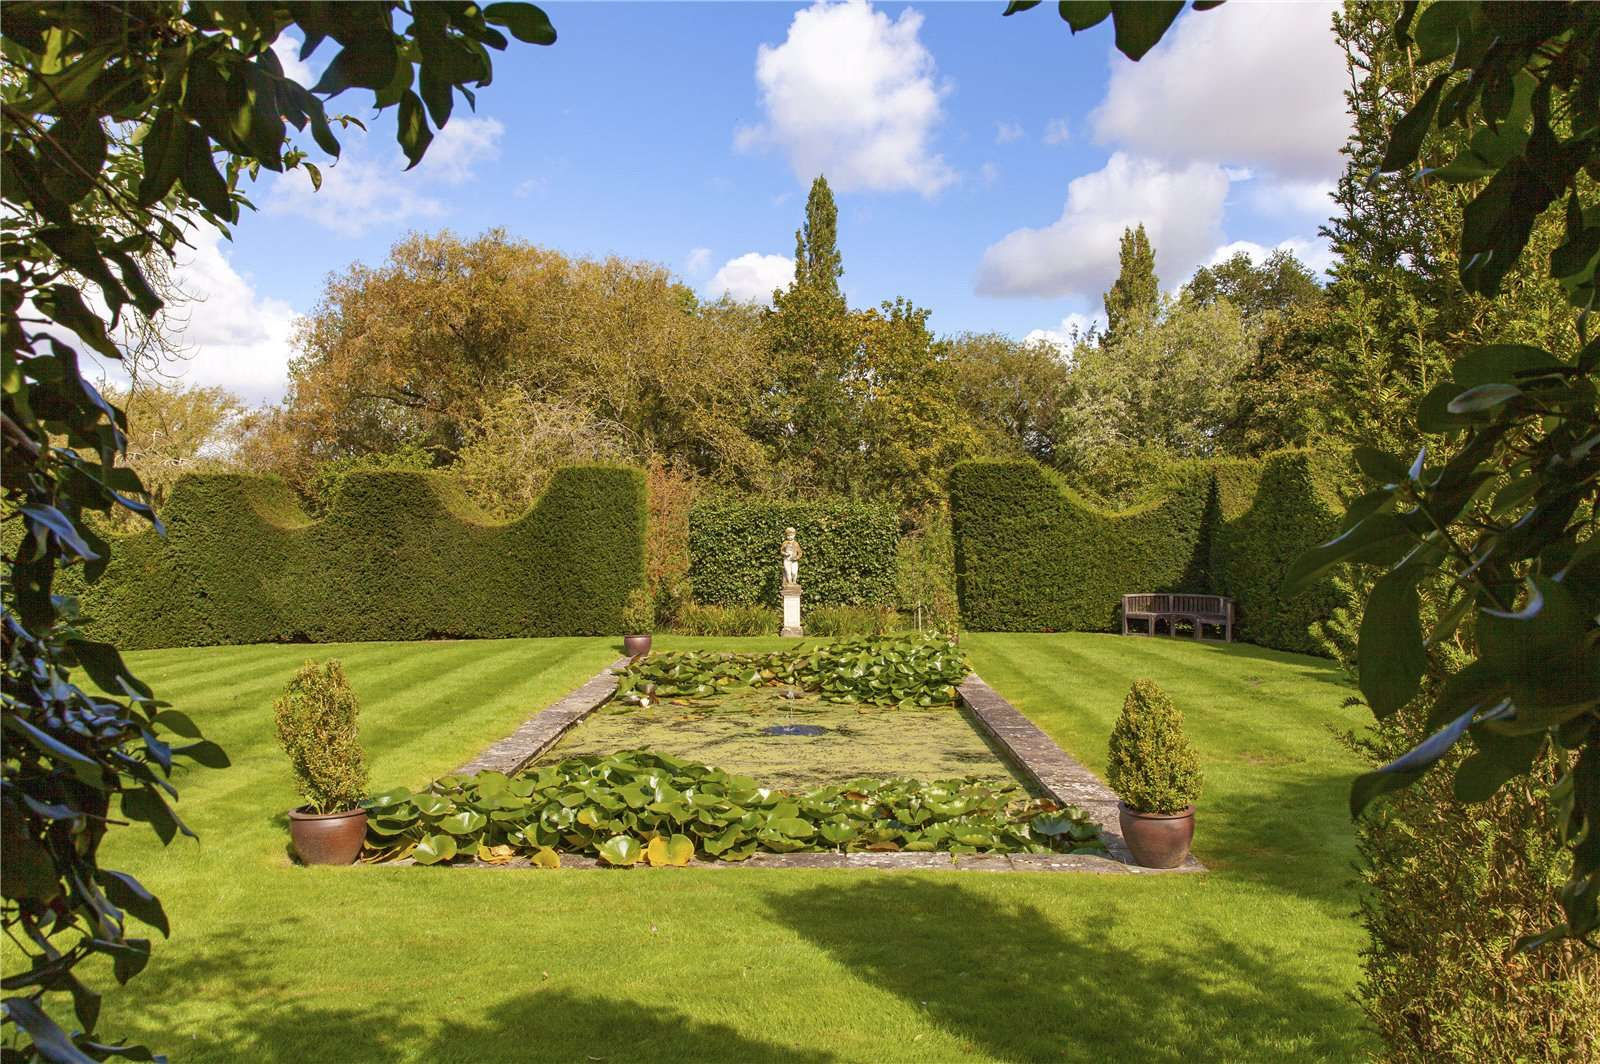 Beauforest House, Wallingford - Image Gallery 15 - Gardens